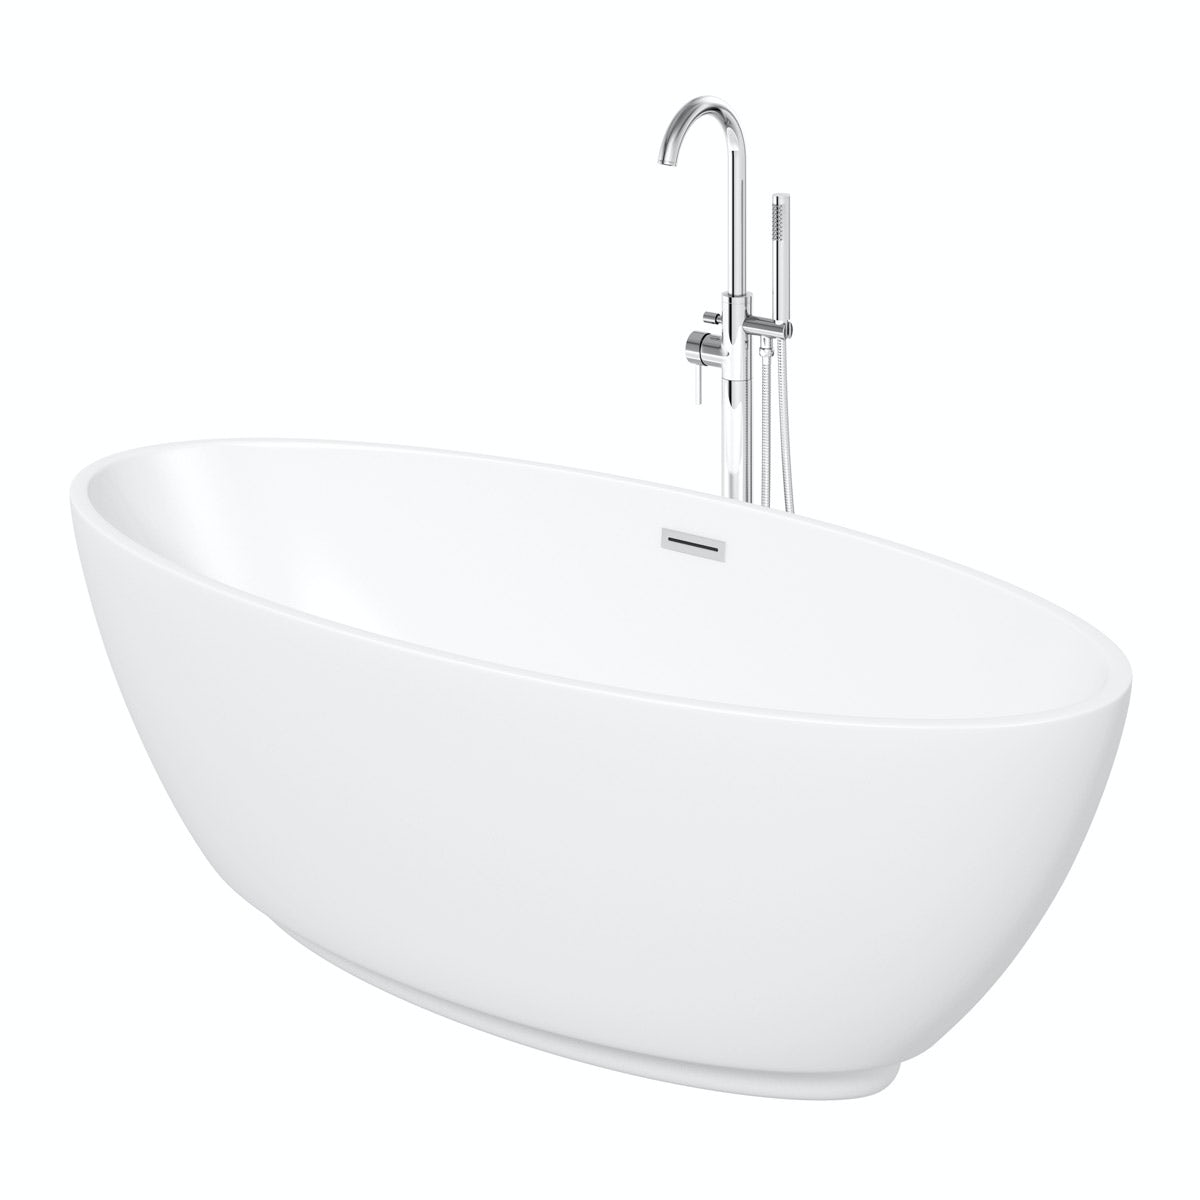 Mode Harrison freestanding bath 1790 x 810 offer pack